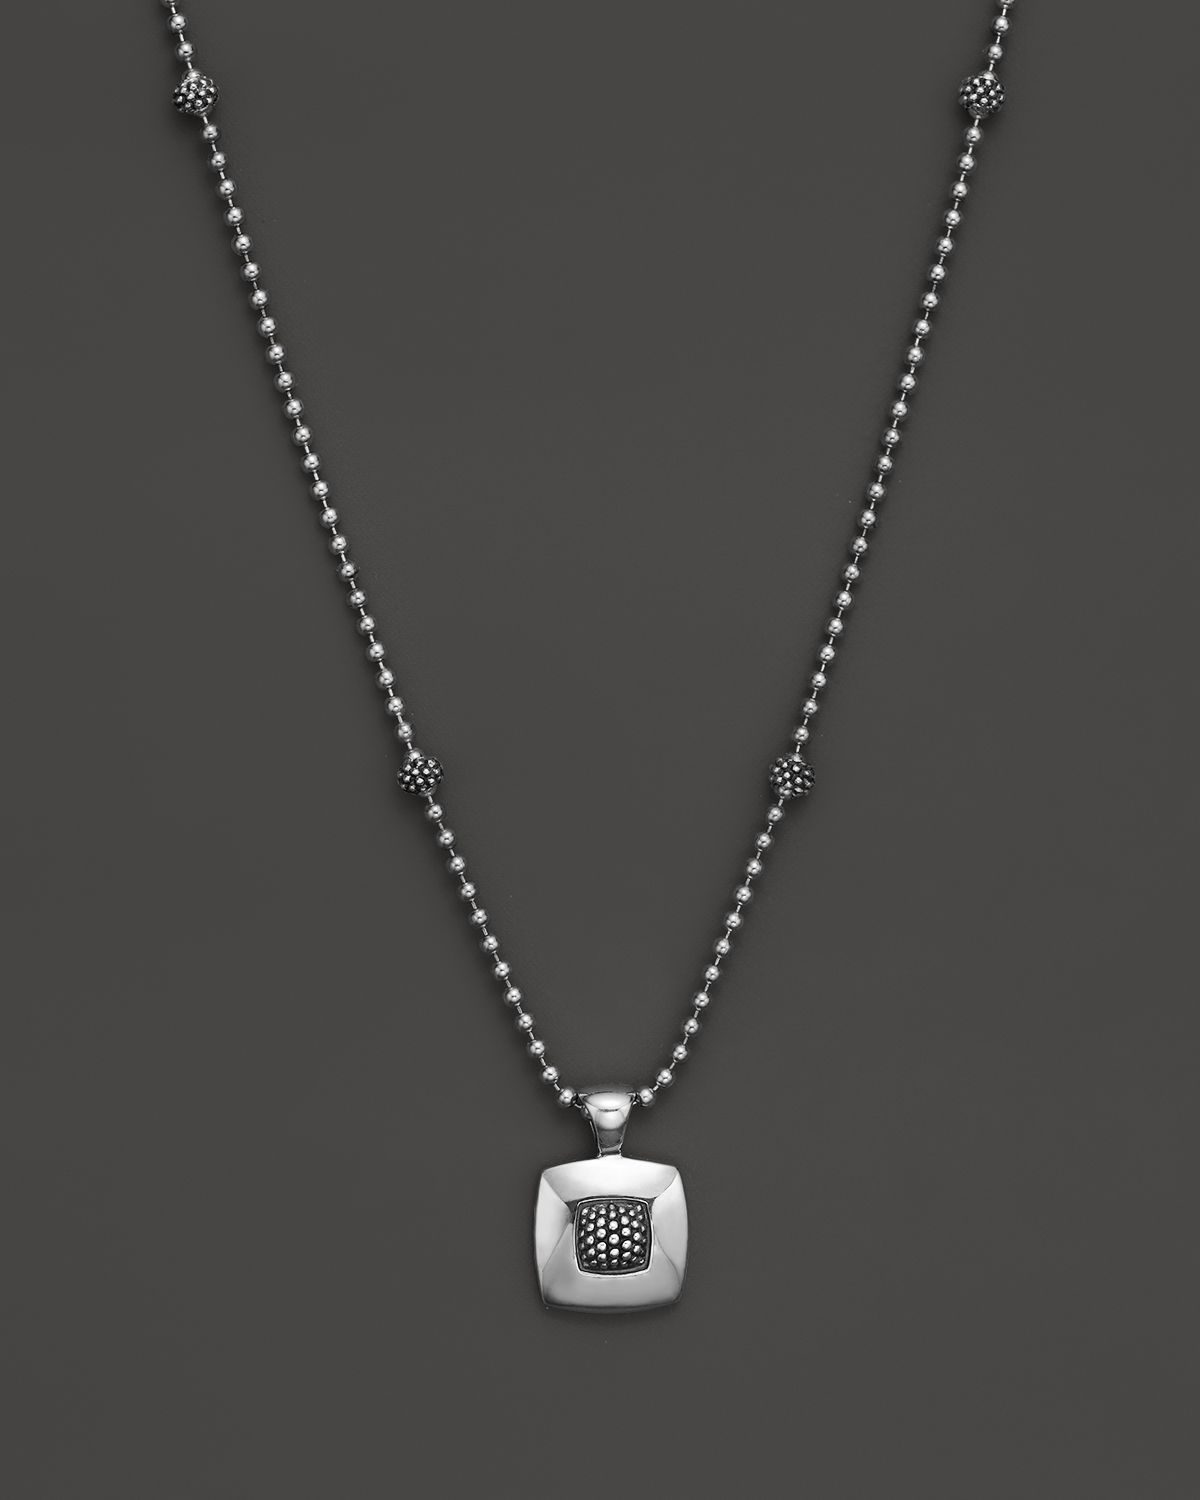 Lyst lagos sterling silver imagine square pendant necklace 16 in gallery aloadofball Choice Image